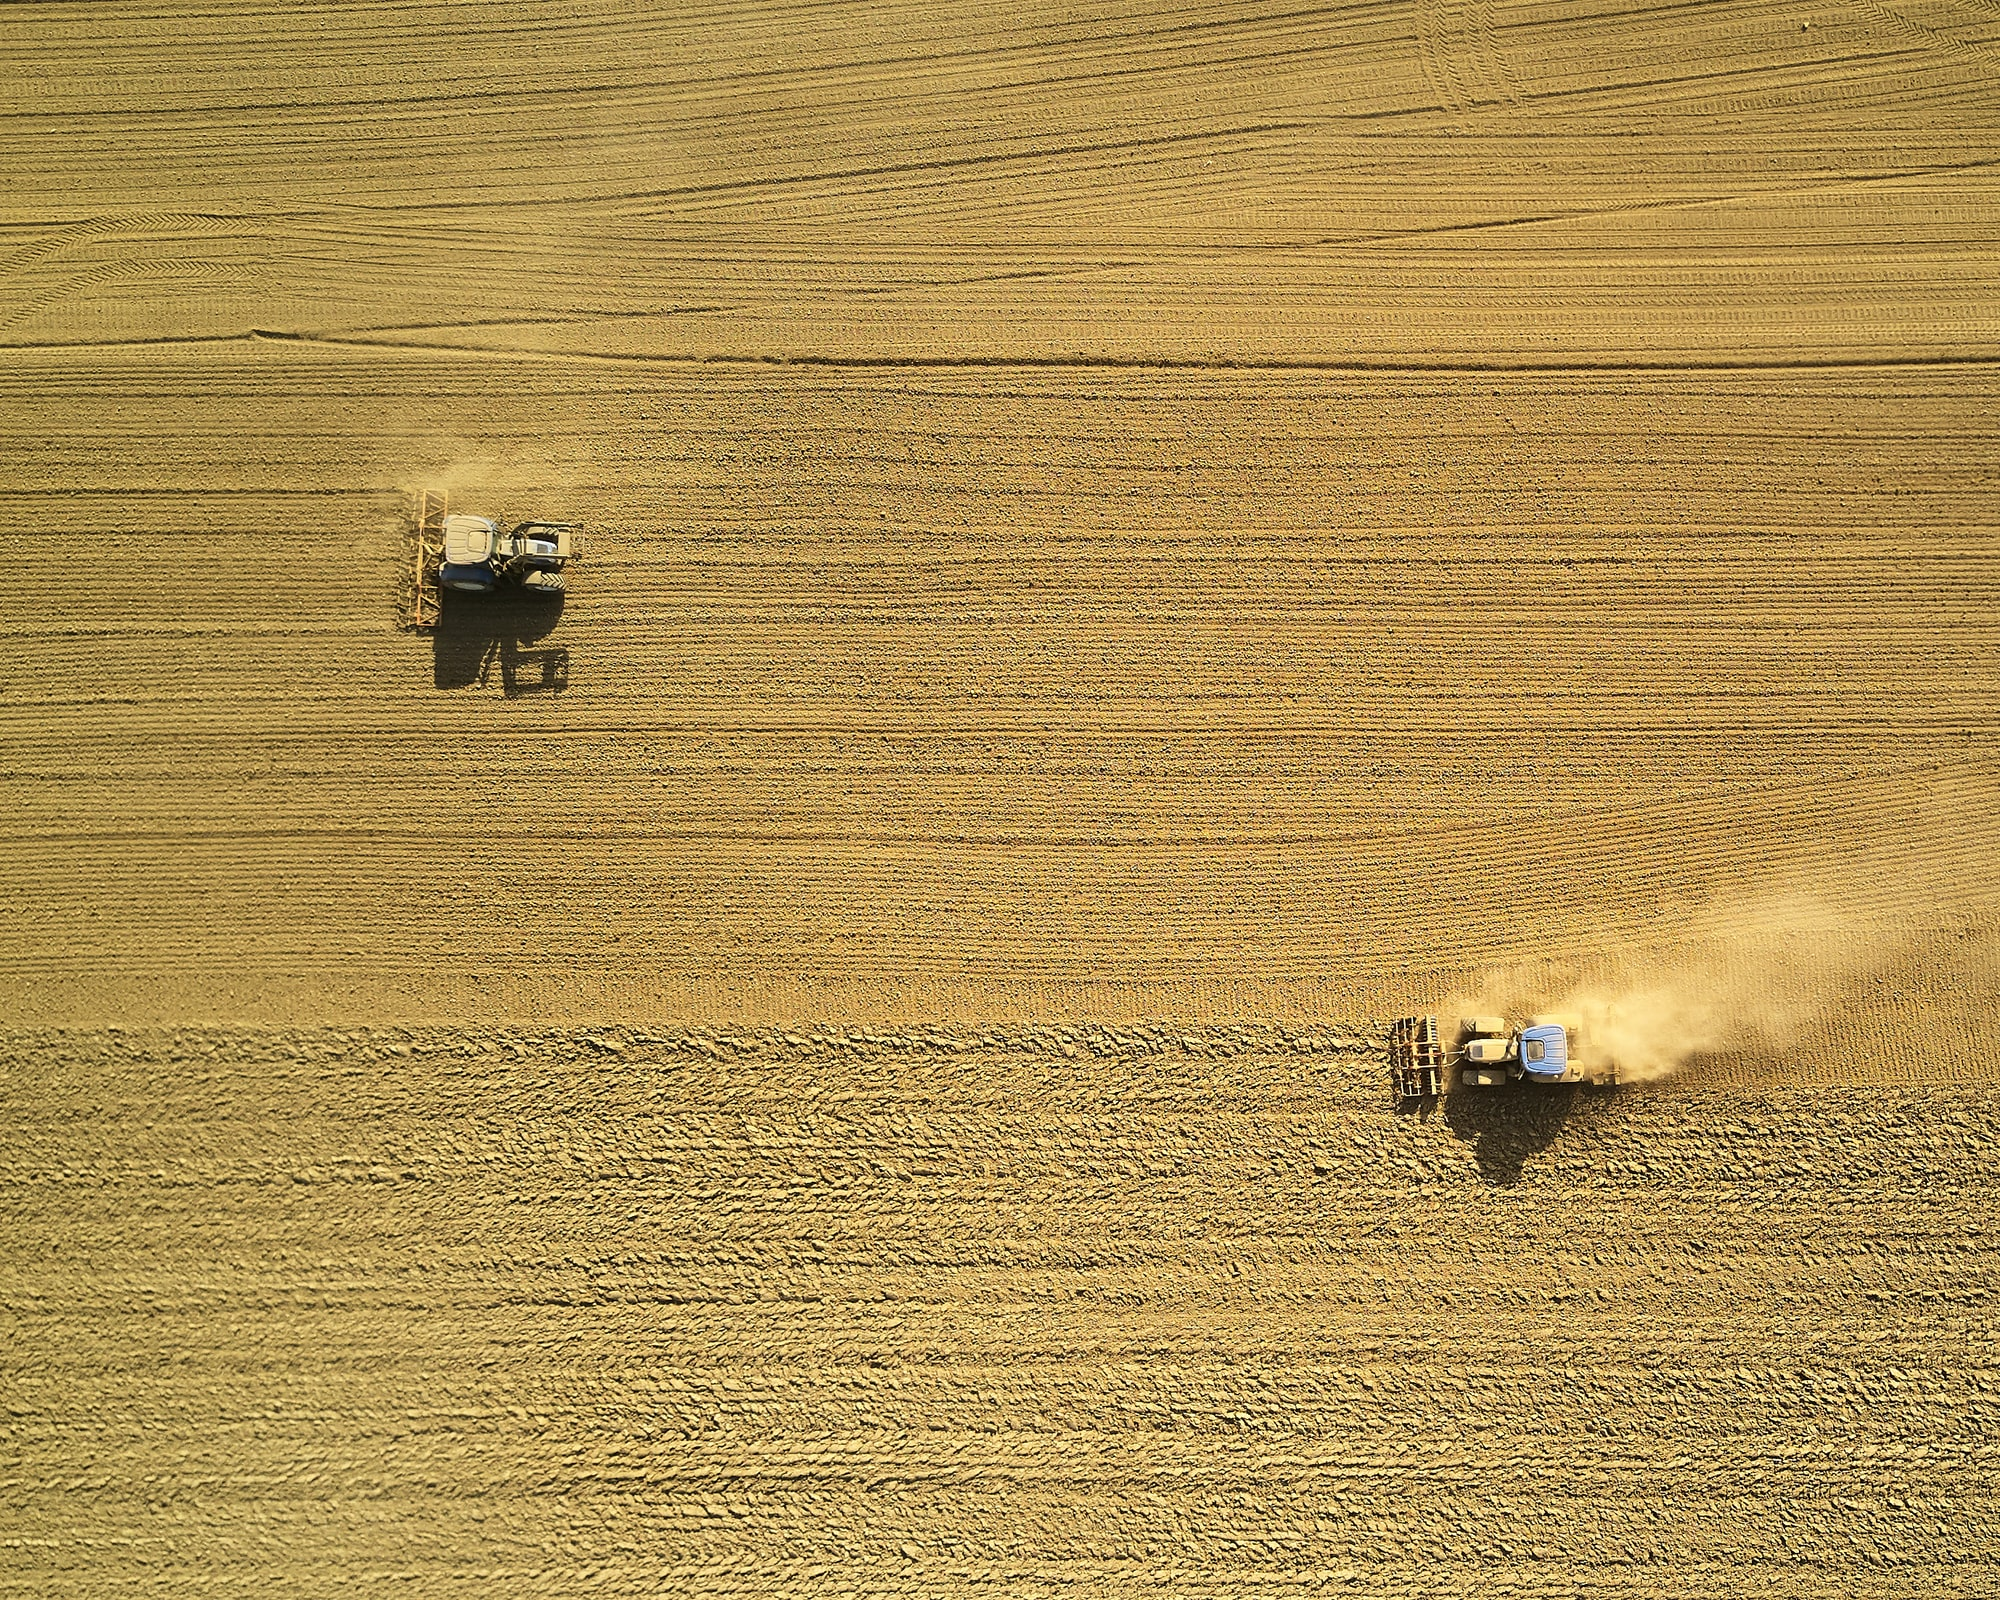 Big win for farmers: Israeli Agtech partnership forms to bring data-backed irrigation solution